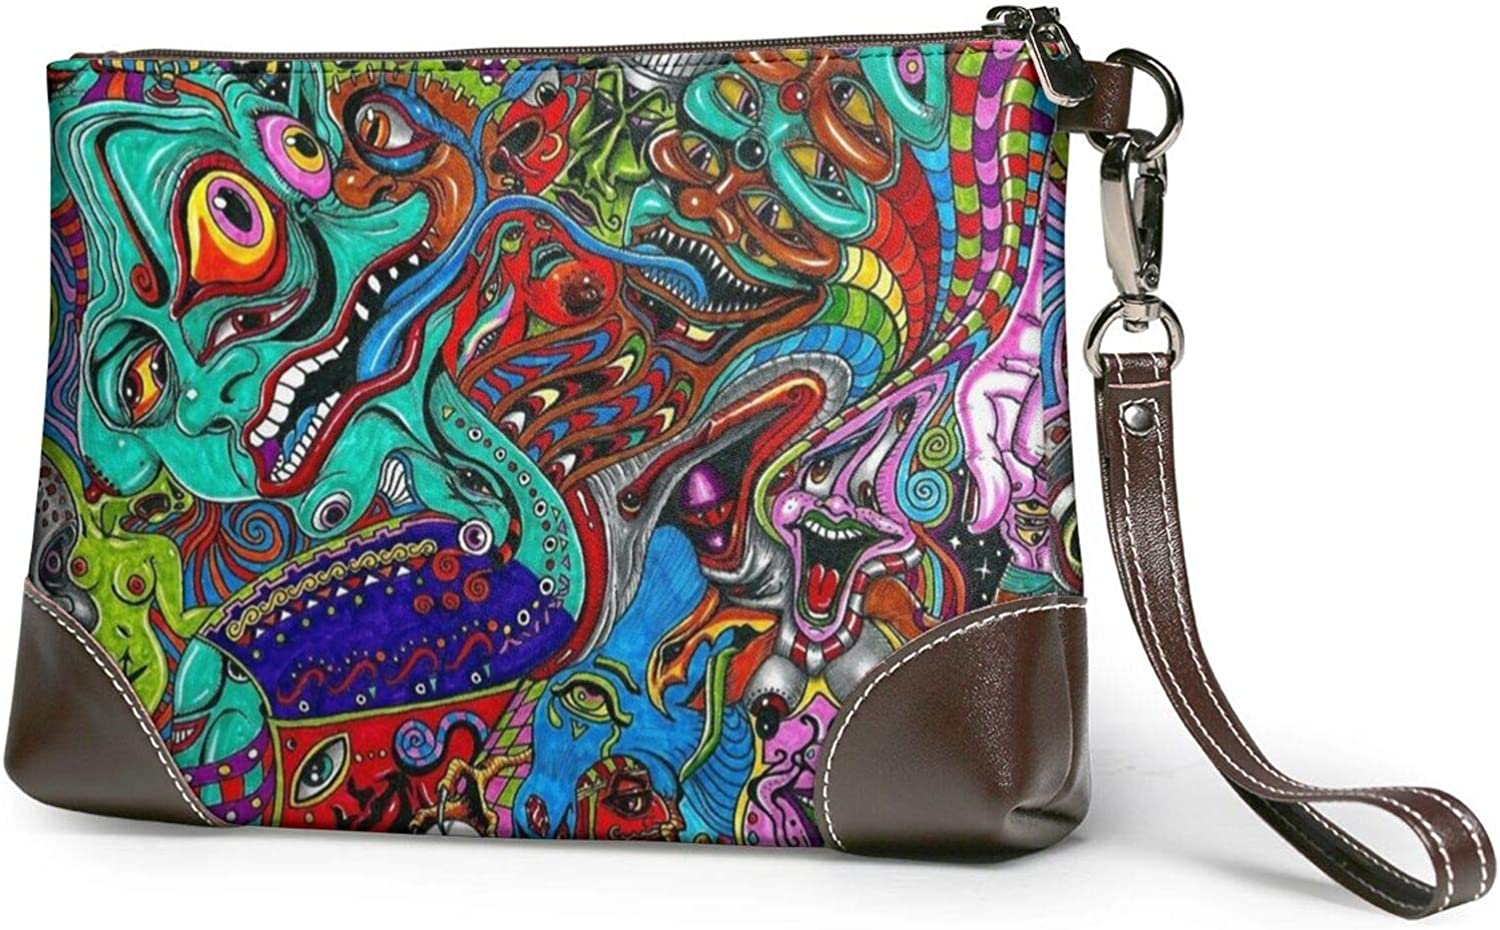 A surprise price is realized Abstract Monster Clutch Purses Wristlet New life Leather Pu Wallet